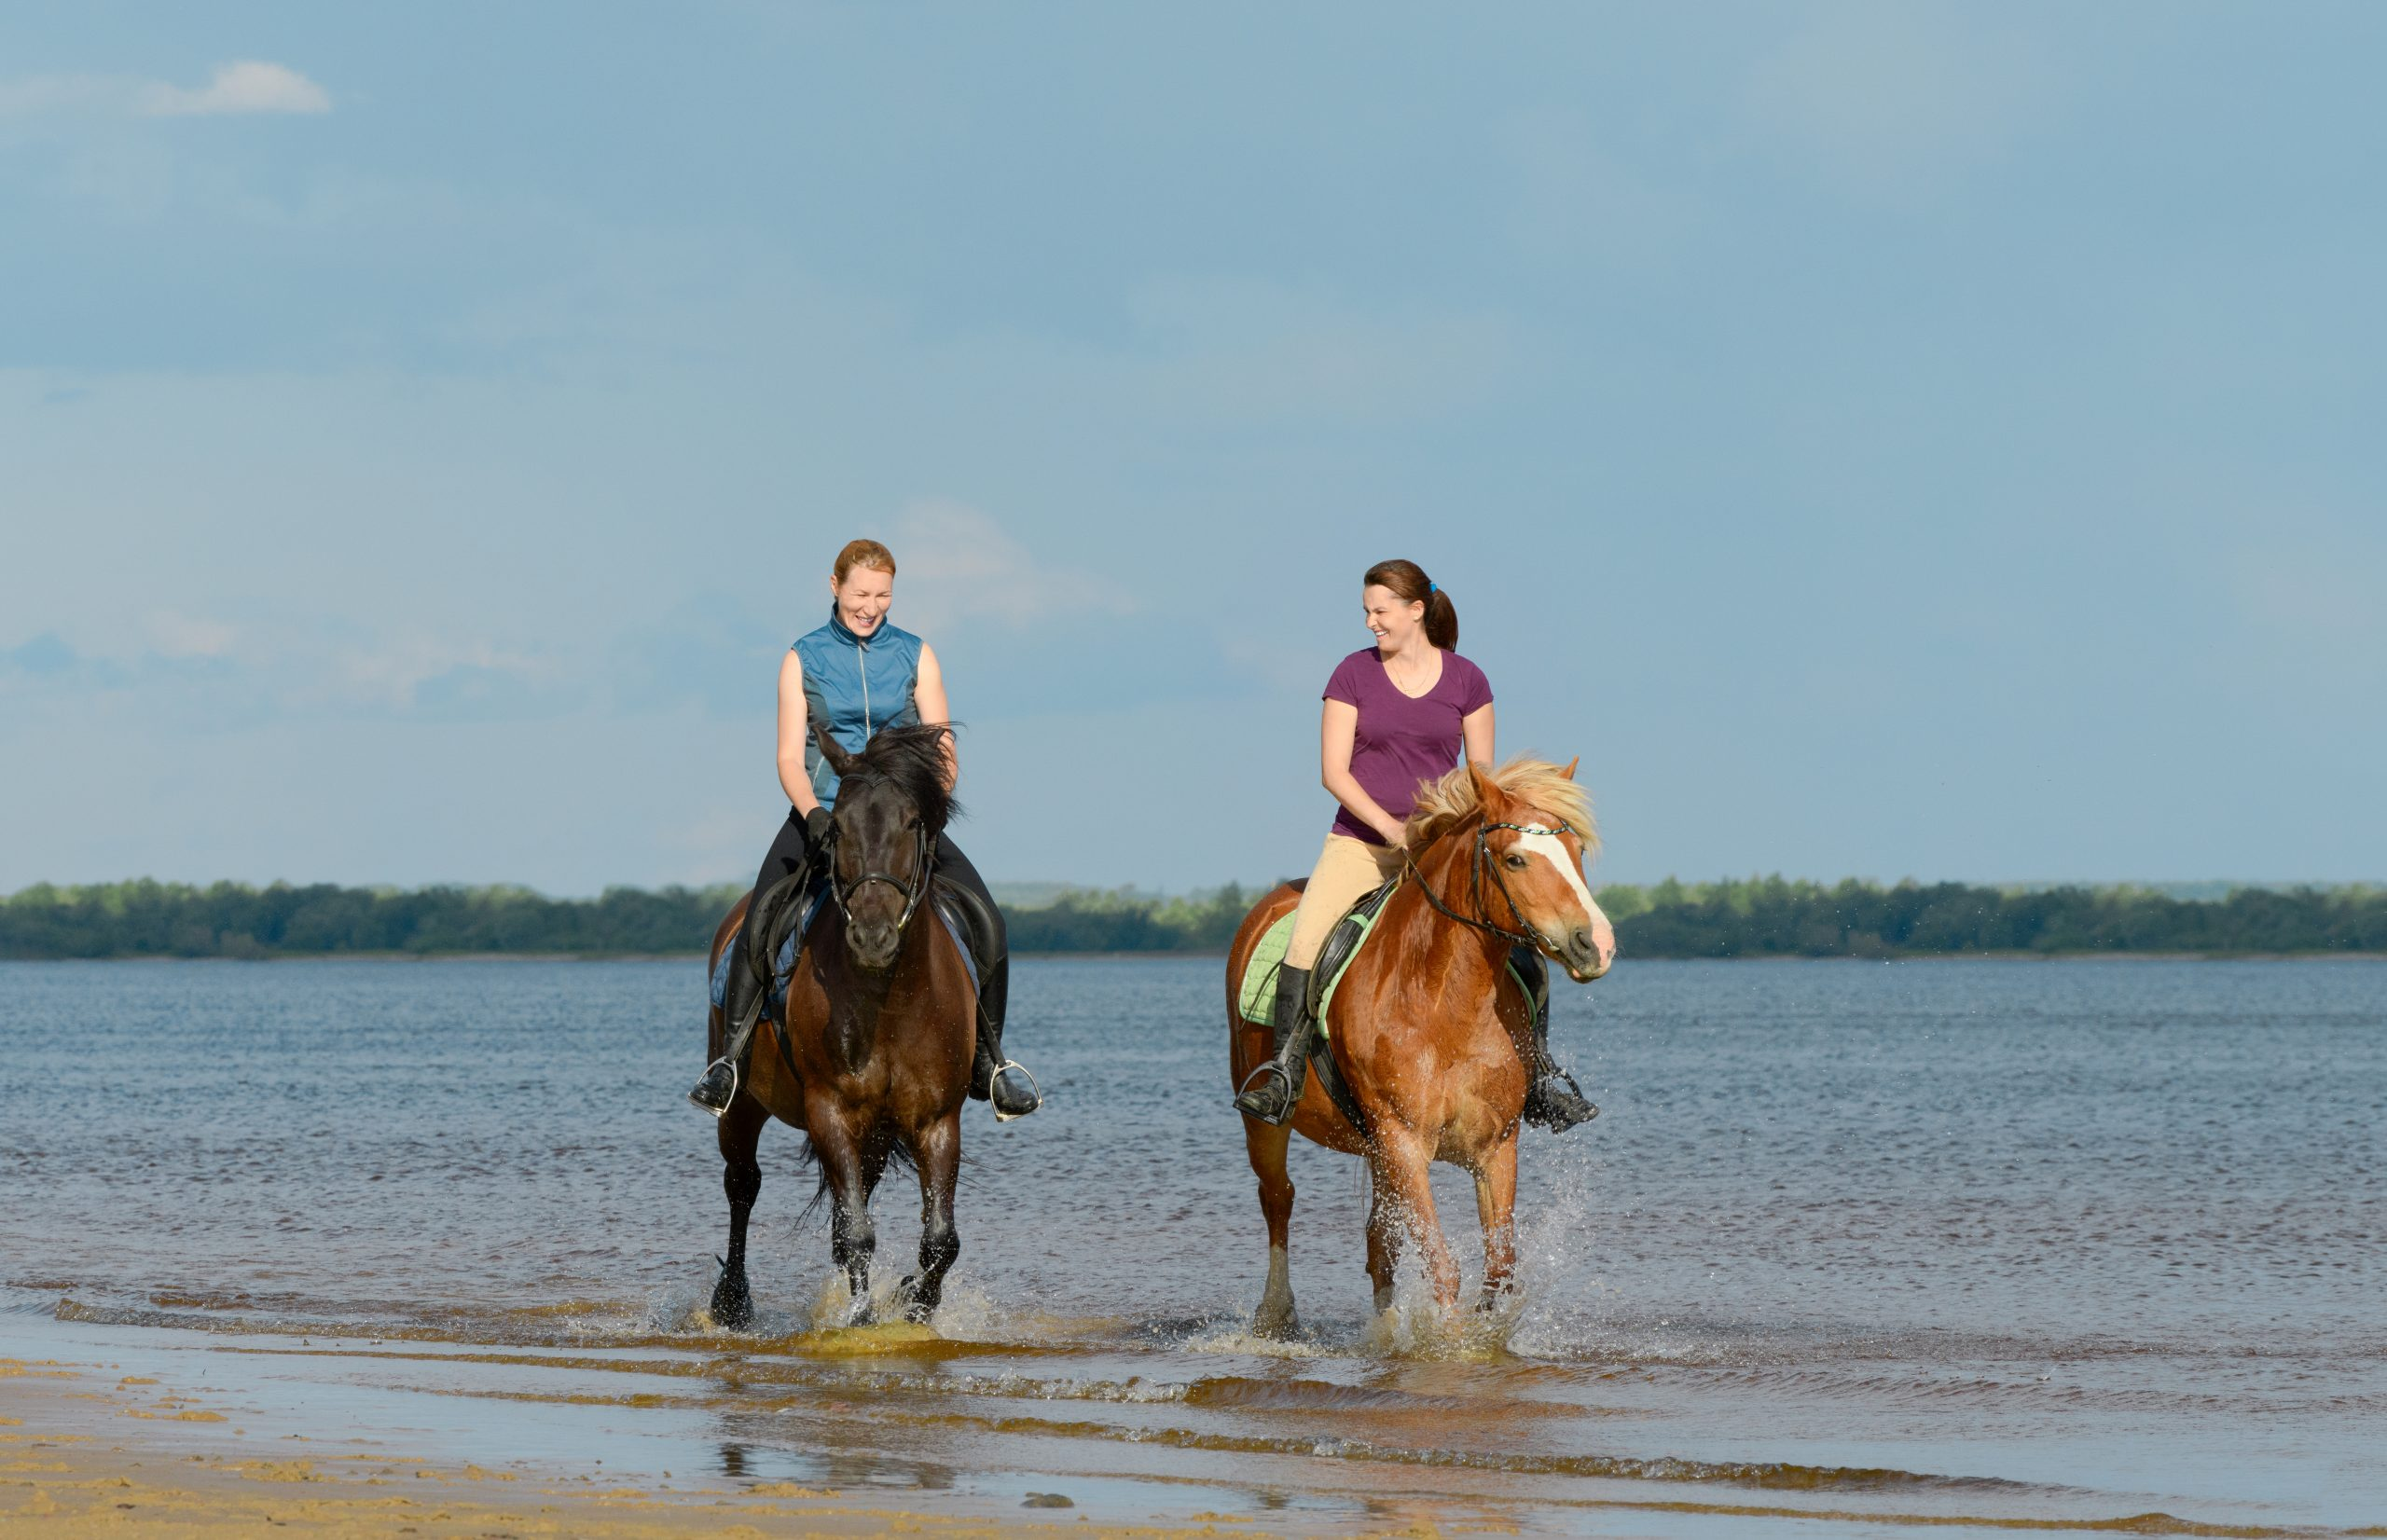 Two,Woman,Are,Riding,On,Horseback,On,Water.,Two,Laughing